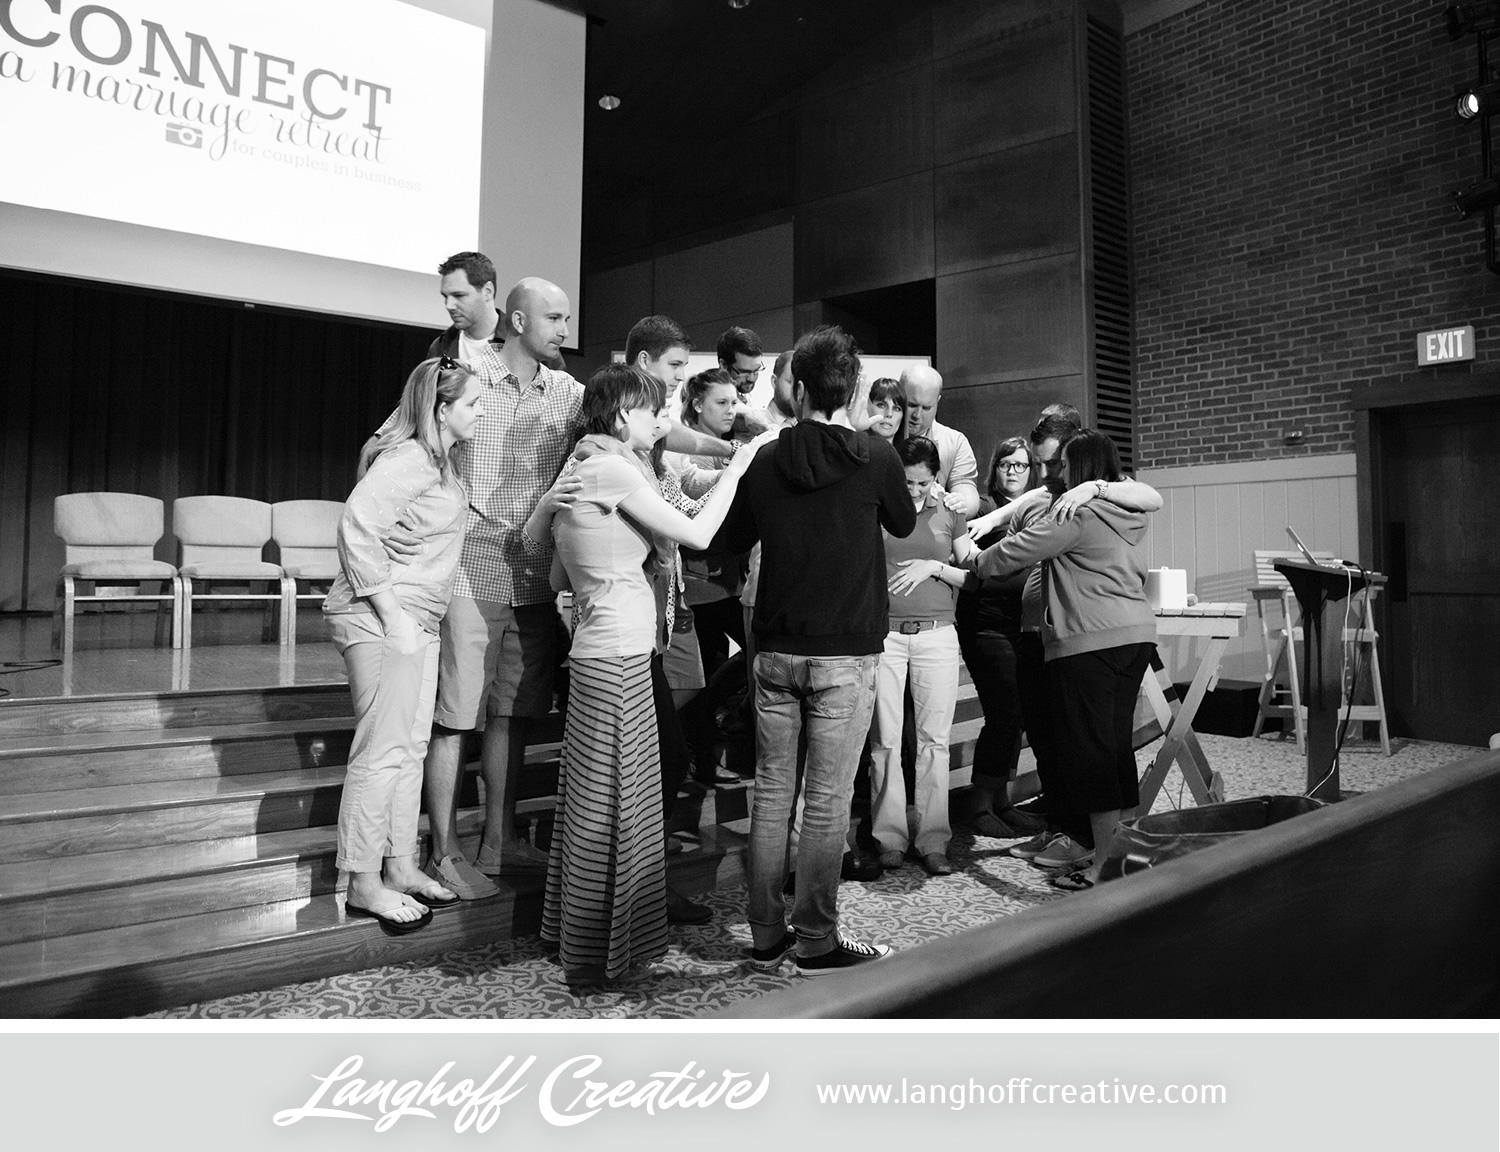 One of the highest points of CONNECT is definitely hearing from couples who experienced complete transformation and restoration in their marriages because of what God taught them during their time there. There weren't many dry eyes in the house during this touching moment of prayer over one particular couple. Amazing!